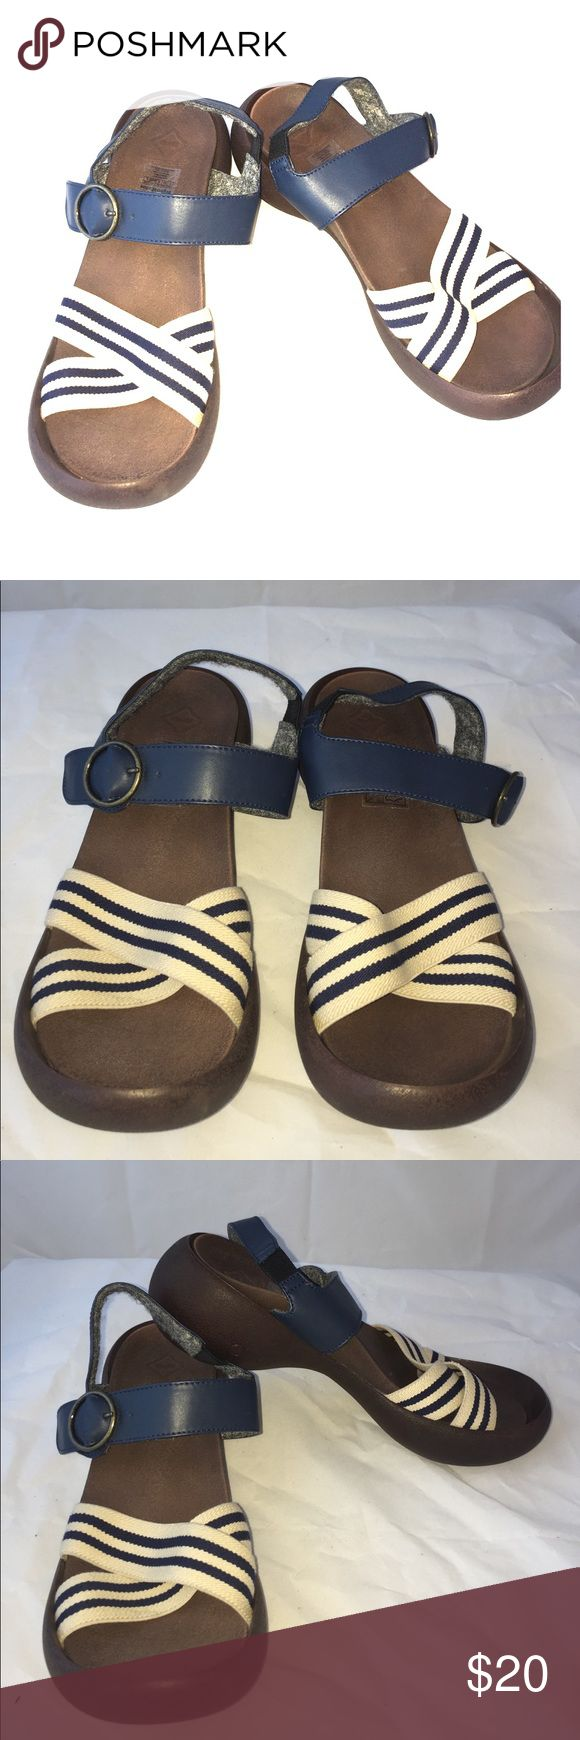 "Regetta Canoe Brown/Blue Egg Heel Sandals Size 7 Brand New without box. Regetta Canoe Womens Egg Heel Sandals Brown Size 7. Unique ""Canoe Like"" design. Comfort to walk and foot support. Excellent stability and grip, It guards toe and heel and prevents stumble. They have an adjustable buckle but also a snap for day to day use. Super Light. Slip resistant. Shock absorption. SUPER comfortable. They do offer a little bit of height. Regetta Canoe Shoes Sandals"